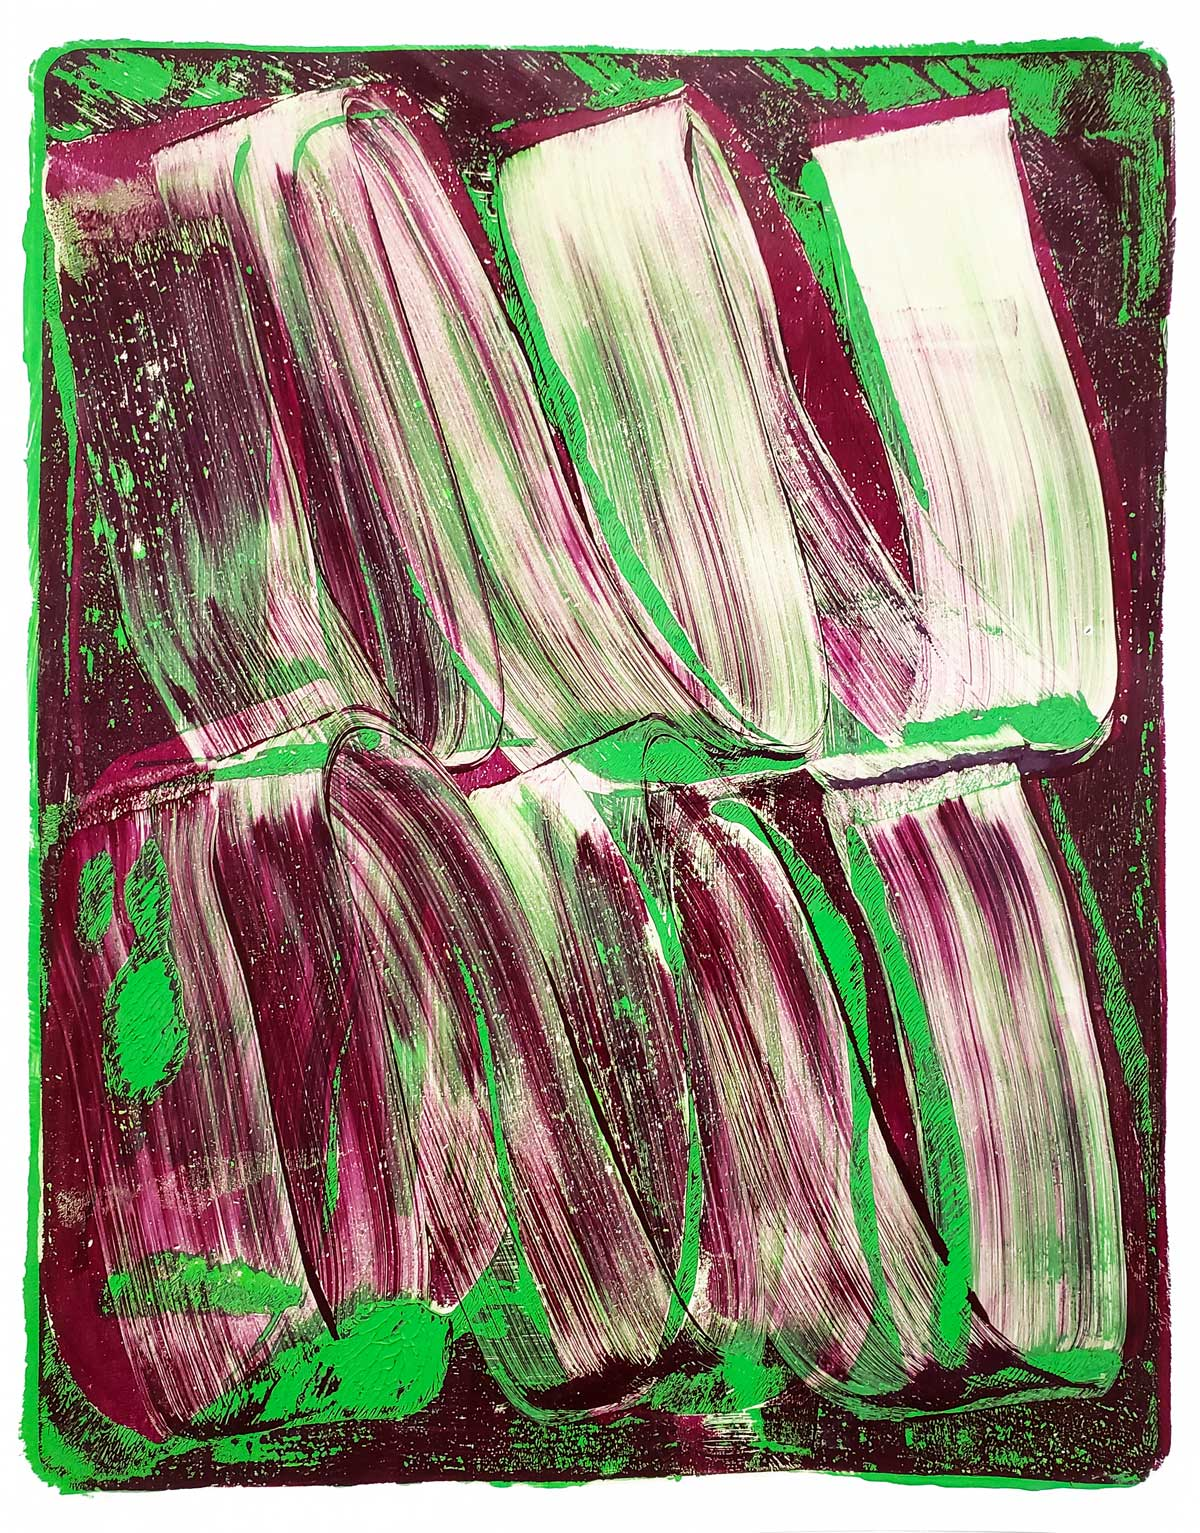 Gestural 22 , 2019, Monotype, 11 x 8.5 in.